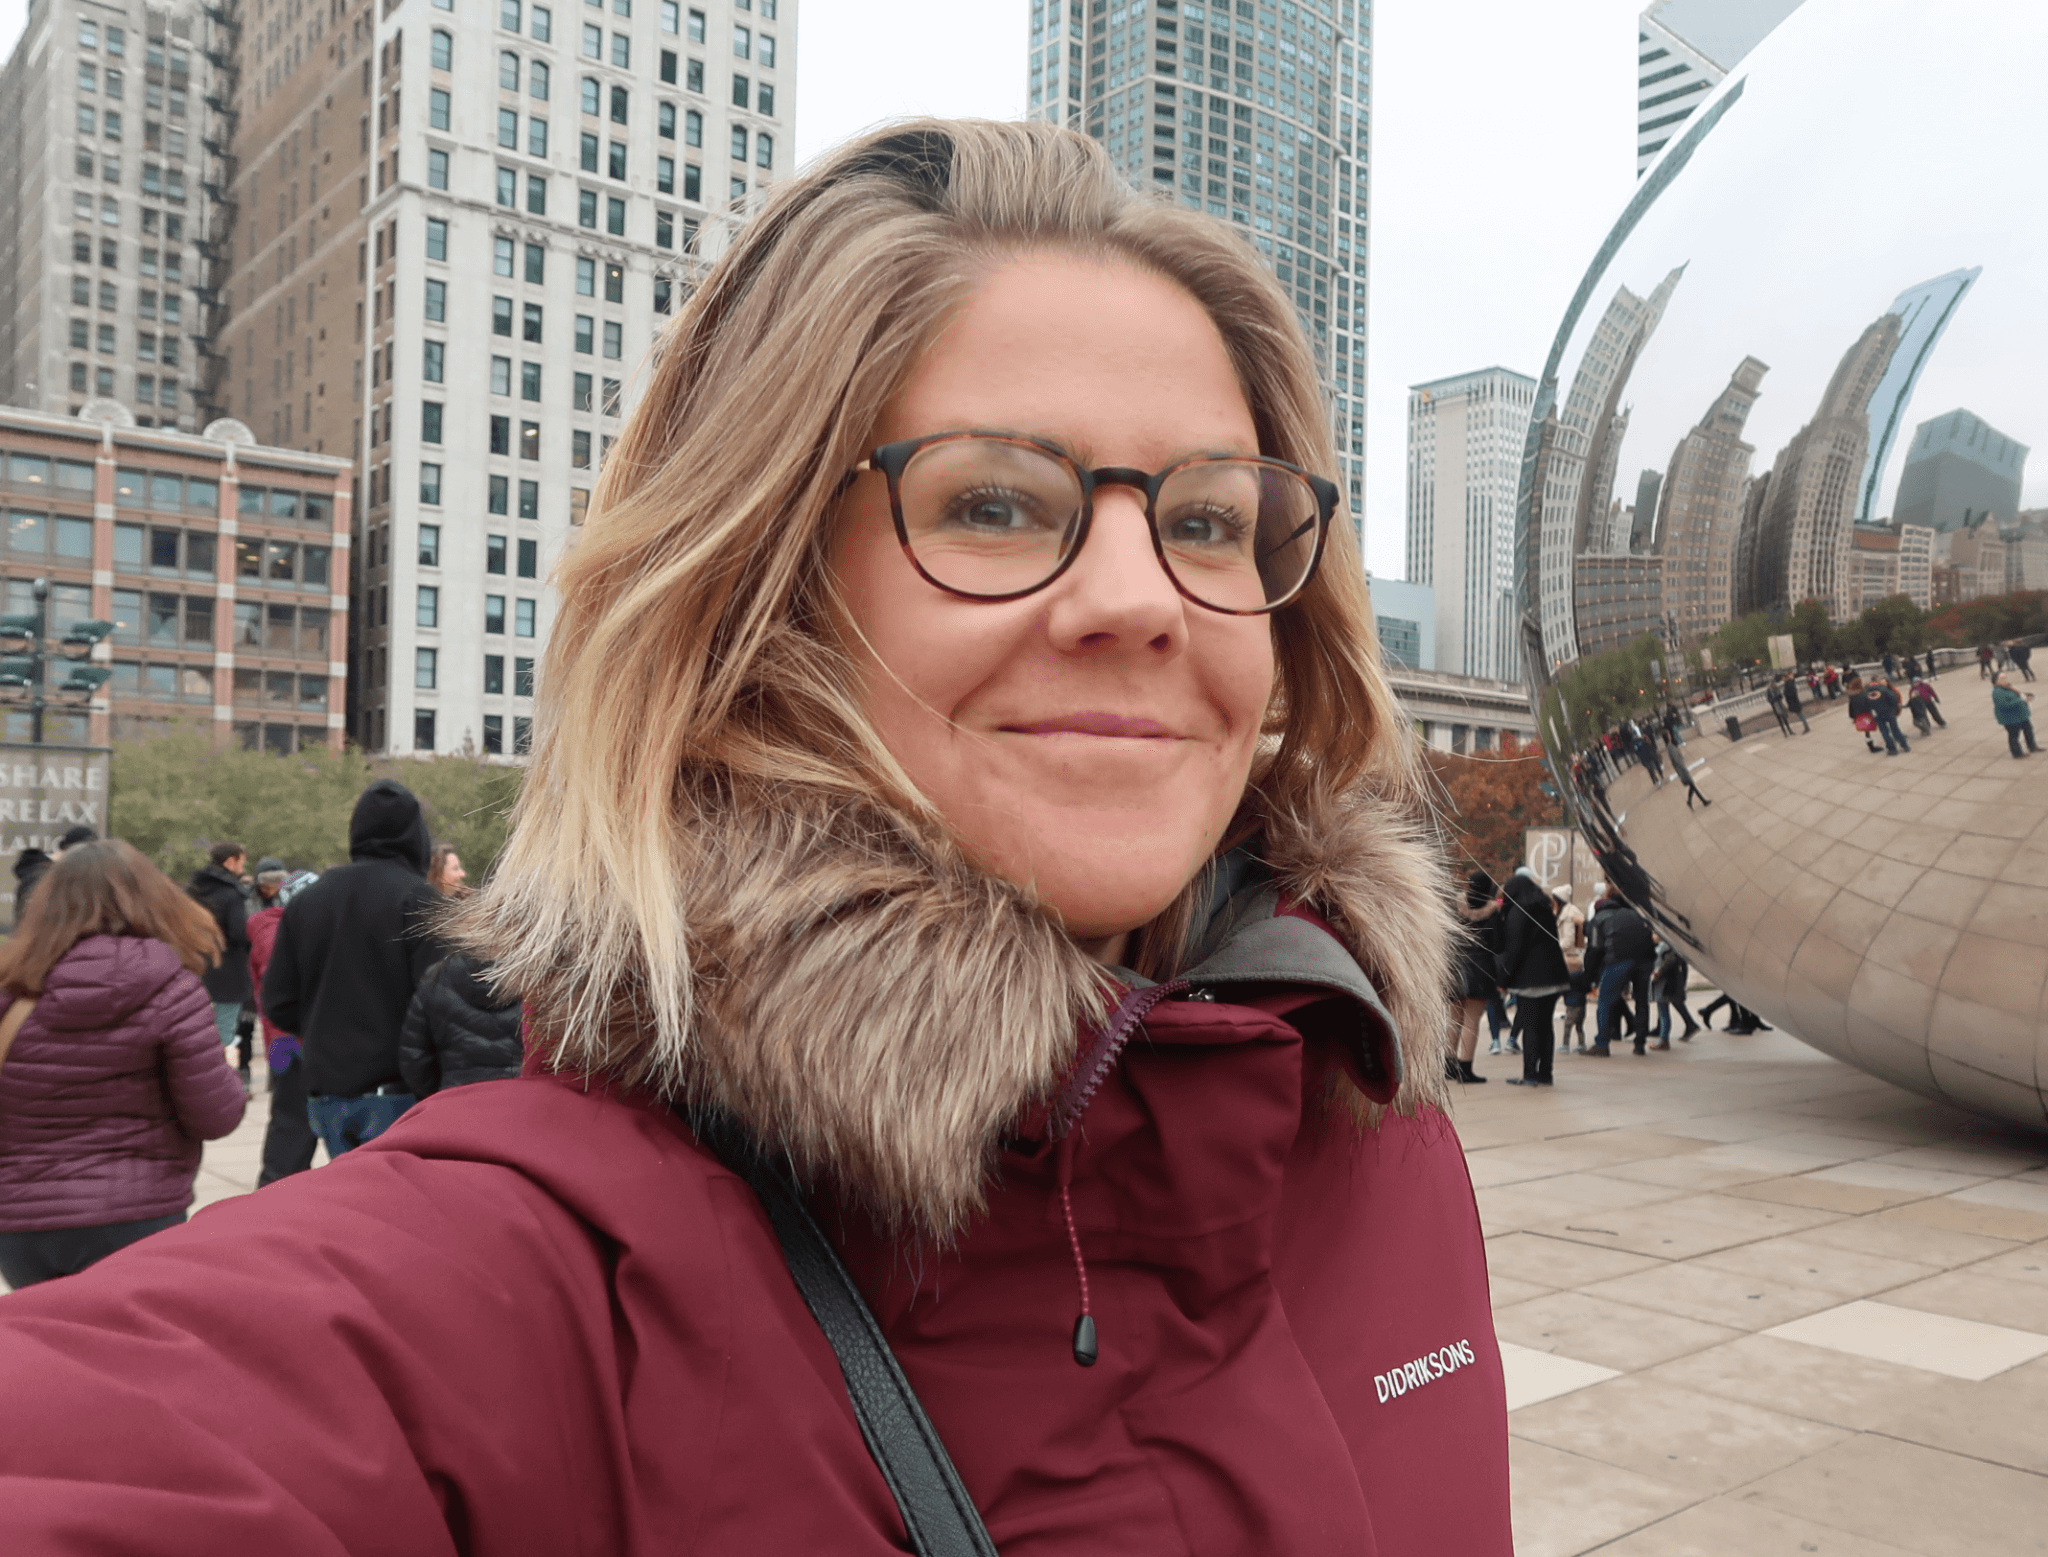 Visit The Bean in Chicago